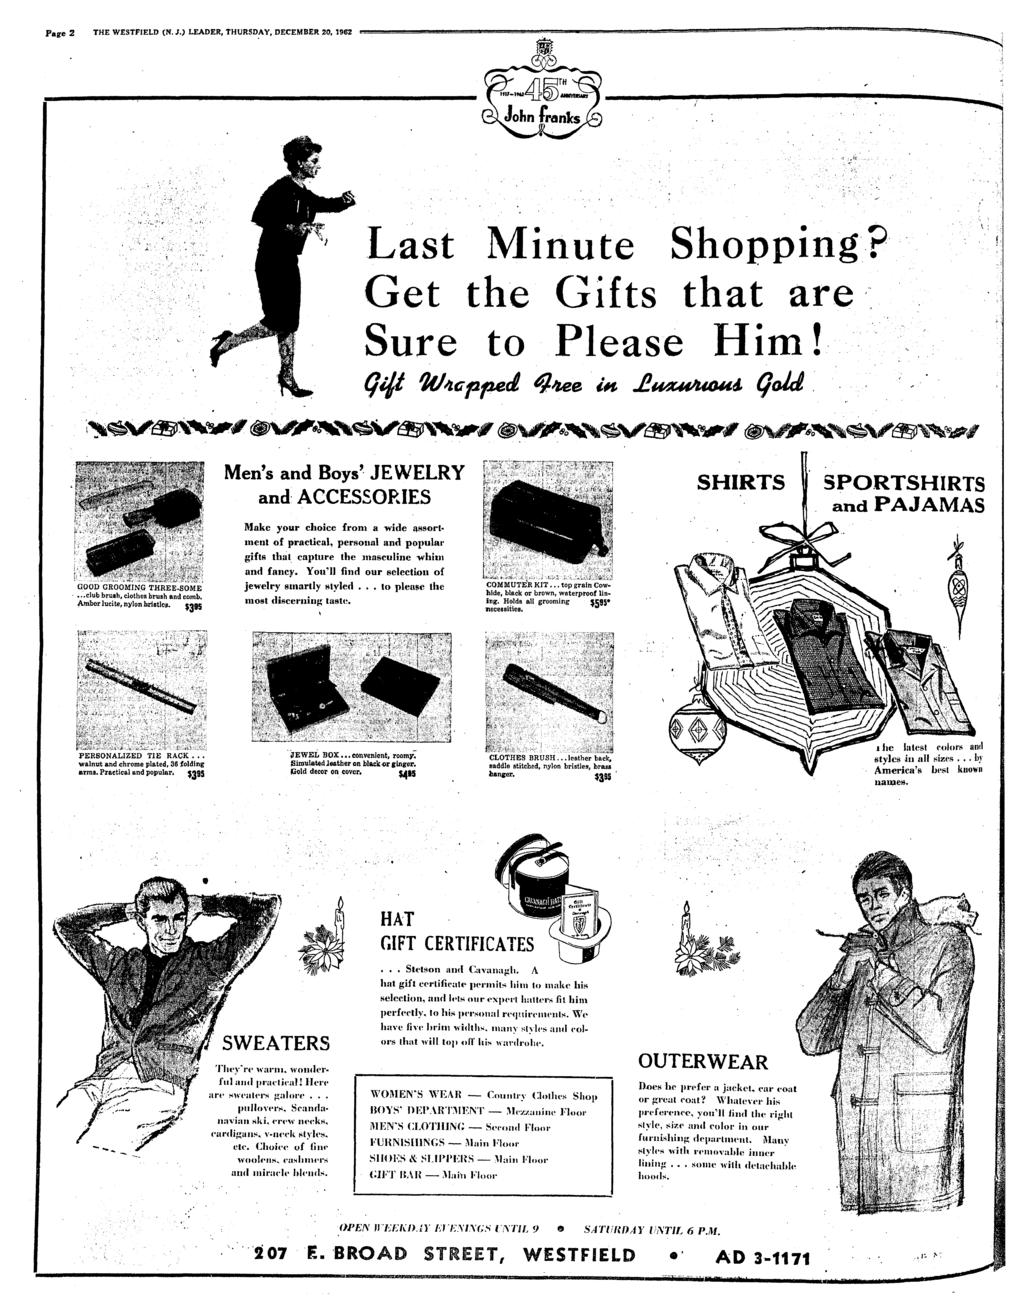 Page 2 THE WESTFIELD (N. J.) LEADER, THURSDAY, DECEMBER 20, 1962 Last Mnute Shoppng? Get the Gfts that are Sure to Please Hm! Wcpfted, n QolA GOOD GROOMING THREE-SOME.